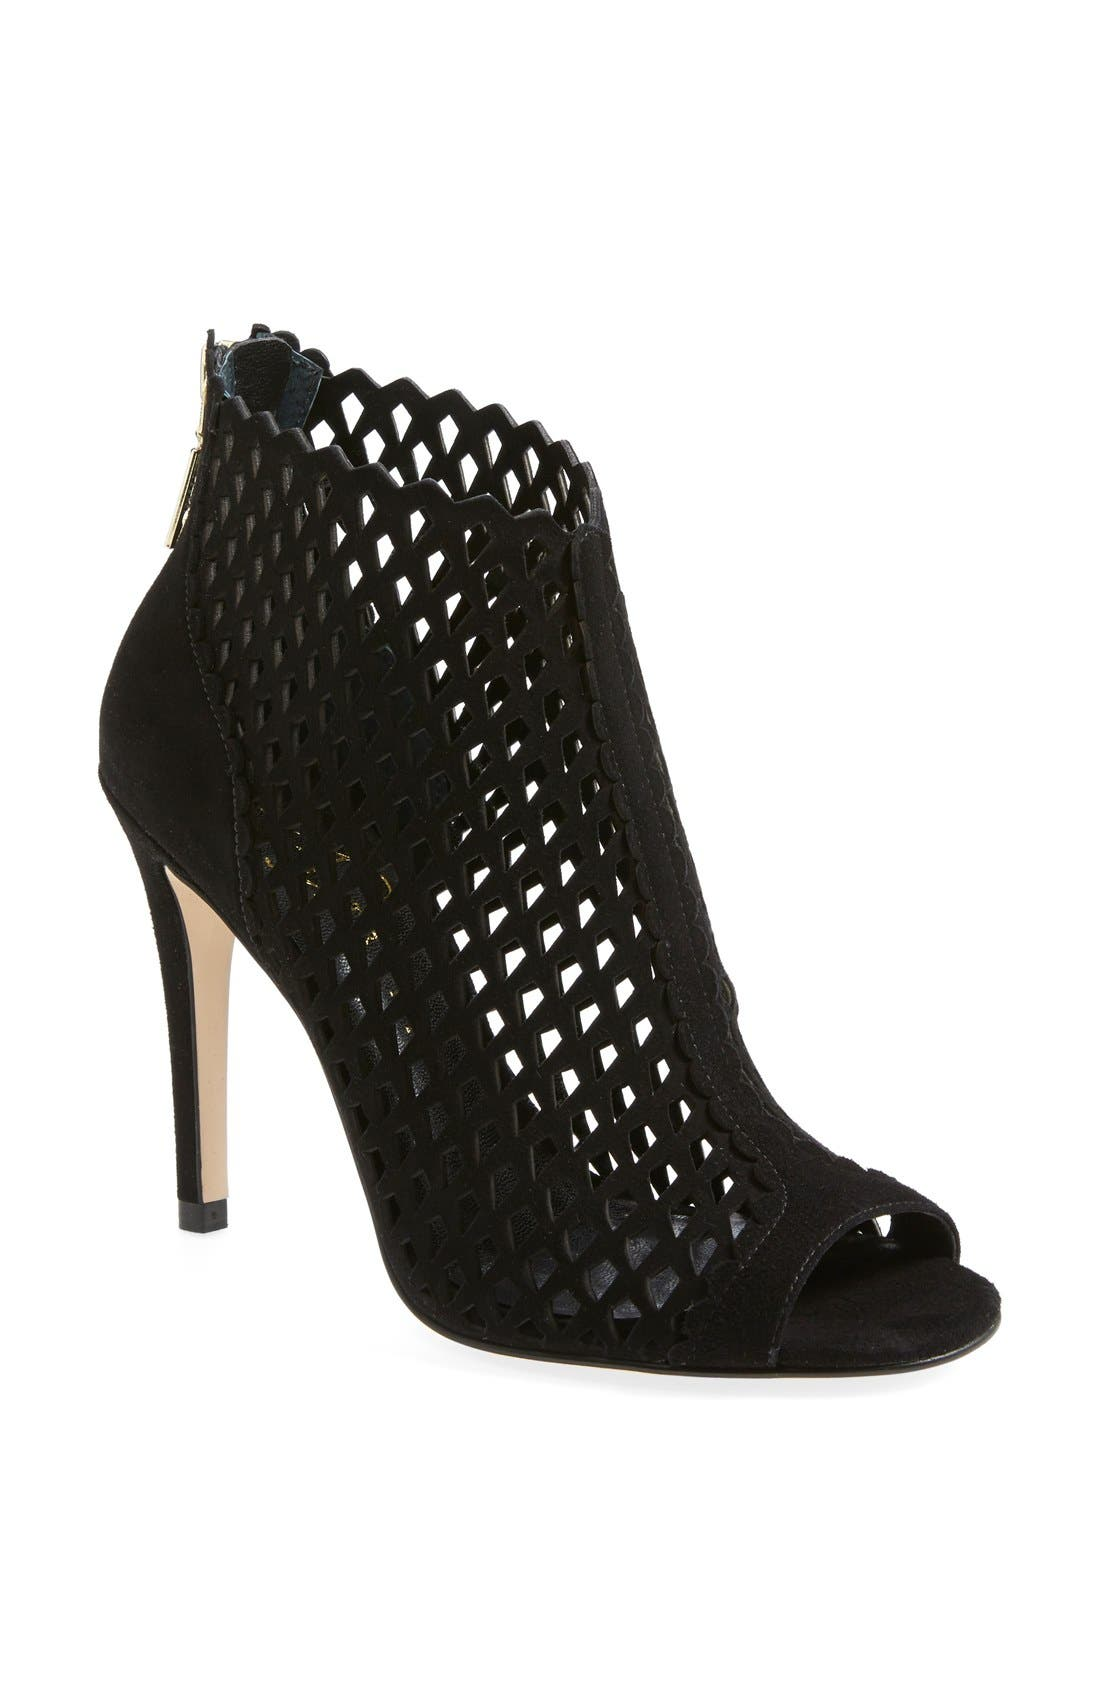 'Didia' Cutout Cage Open Toe Suede Bootie,                             Main thumbnail 1, color,                             001